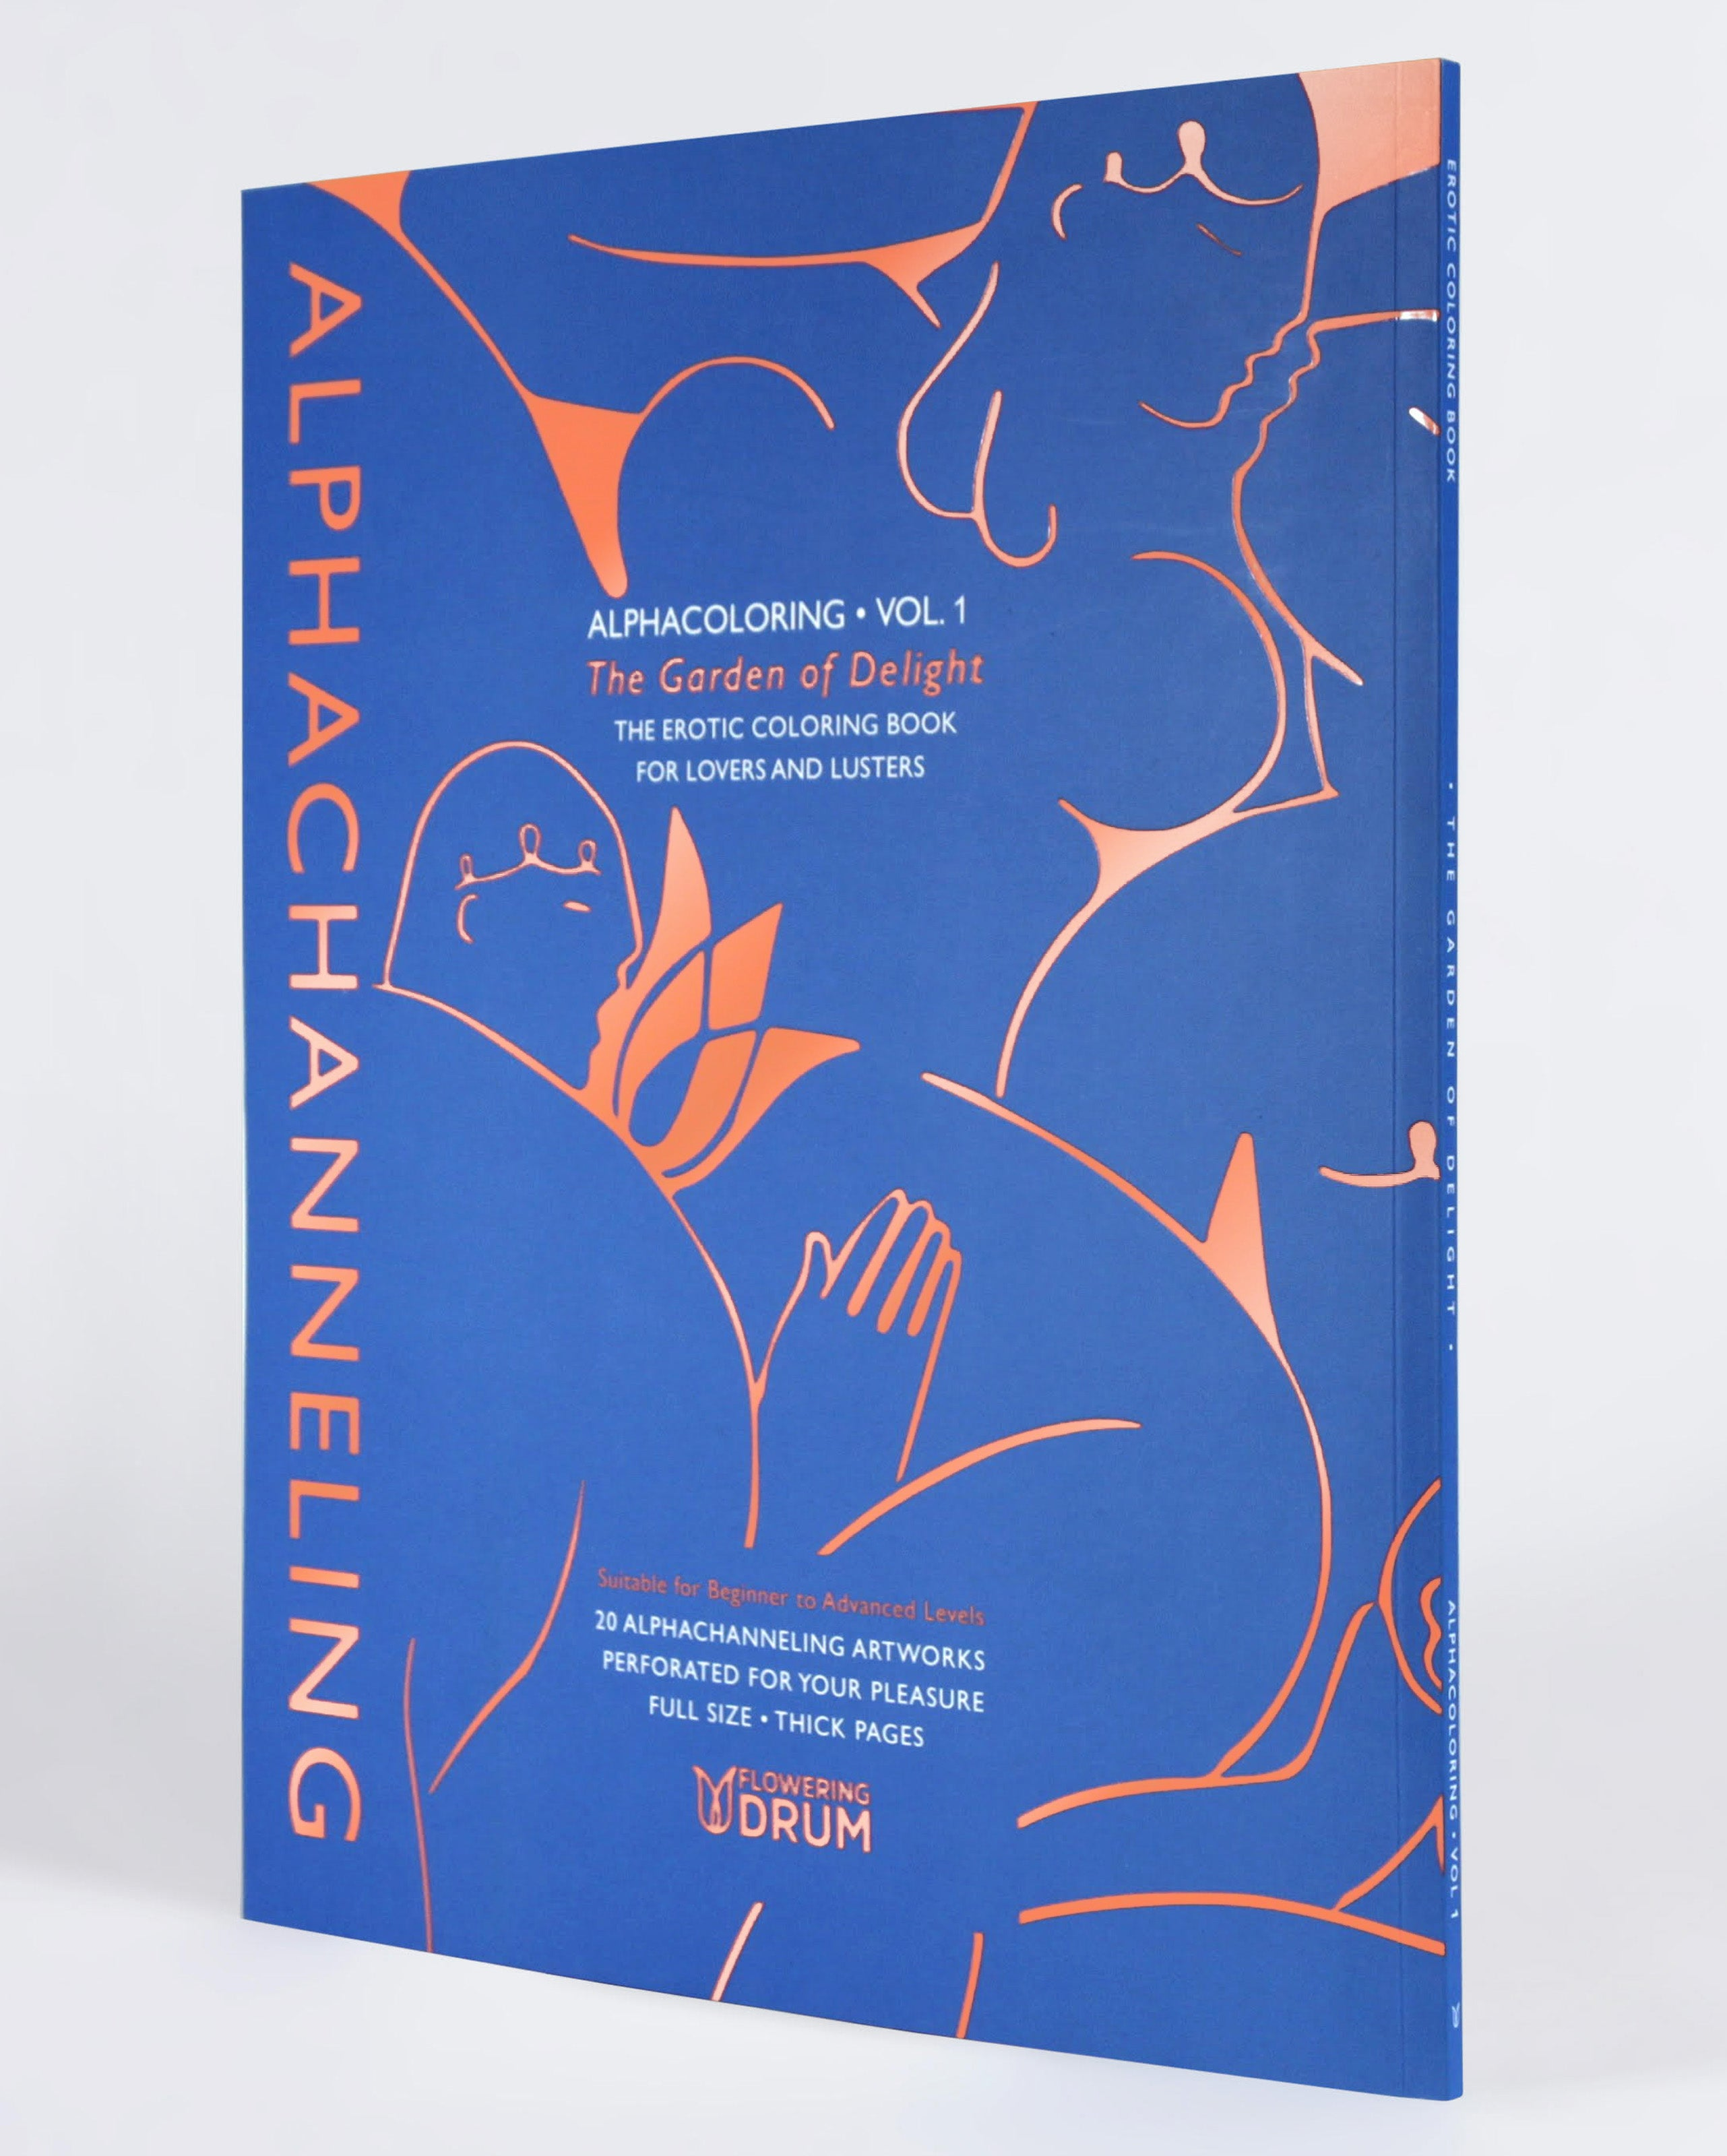 Erotic Coloring Book: Alphacoloring Vol. 1 – ALPHACHANNELING